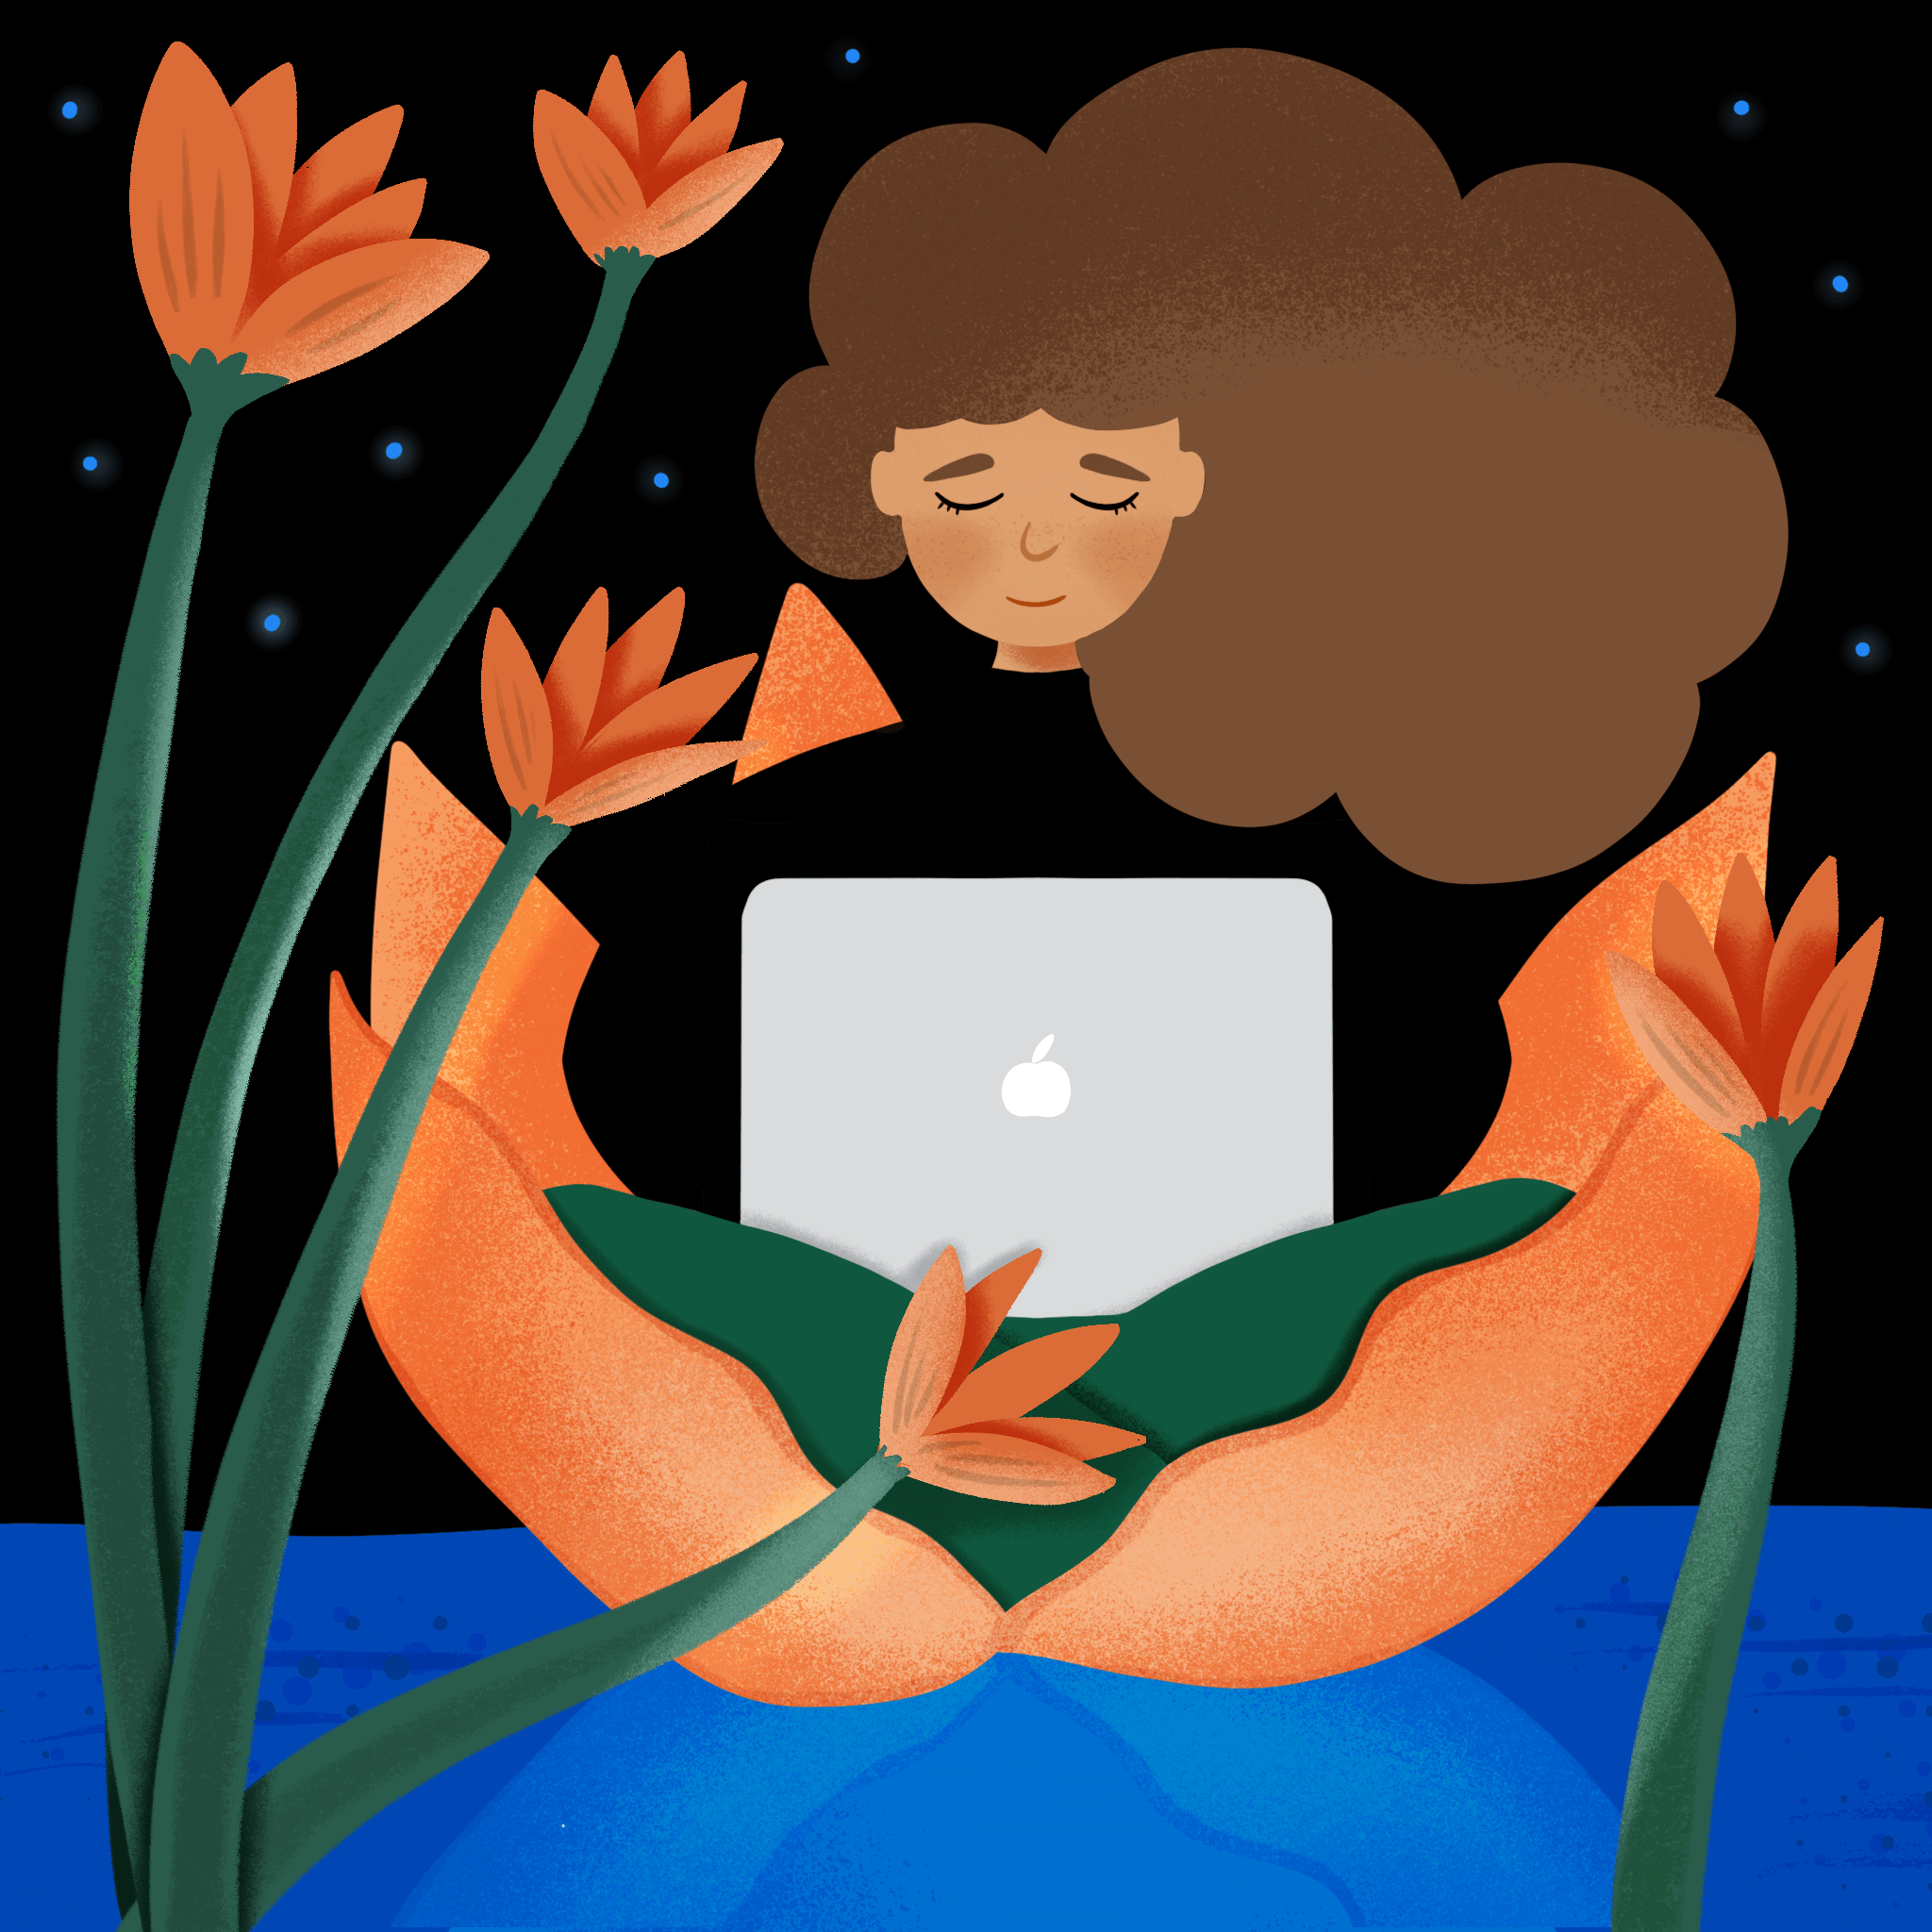 Becoming a Professional Illustrator in 1 Year